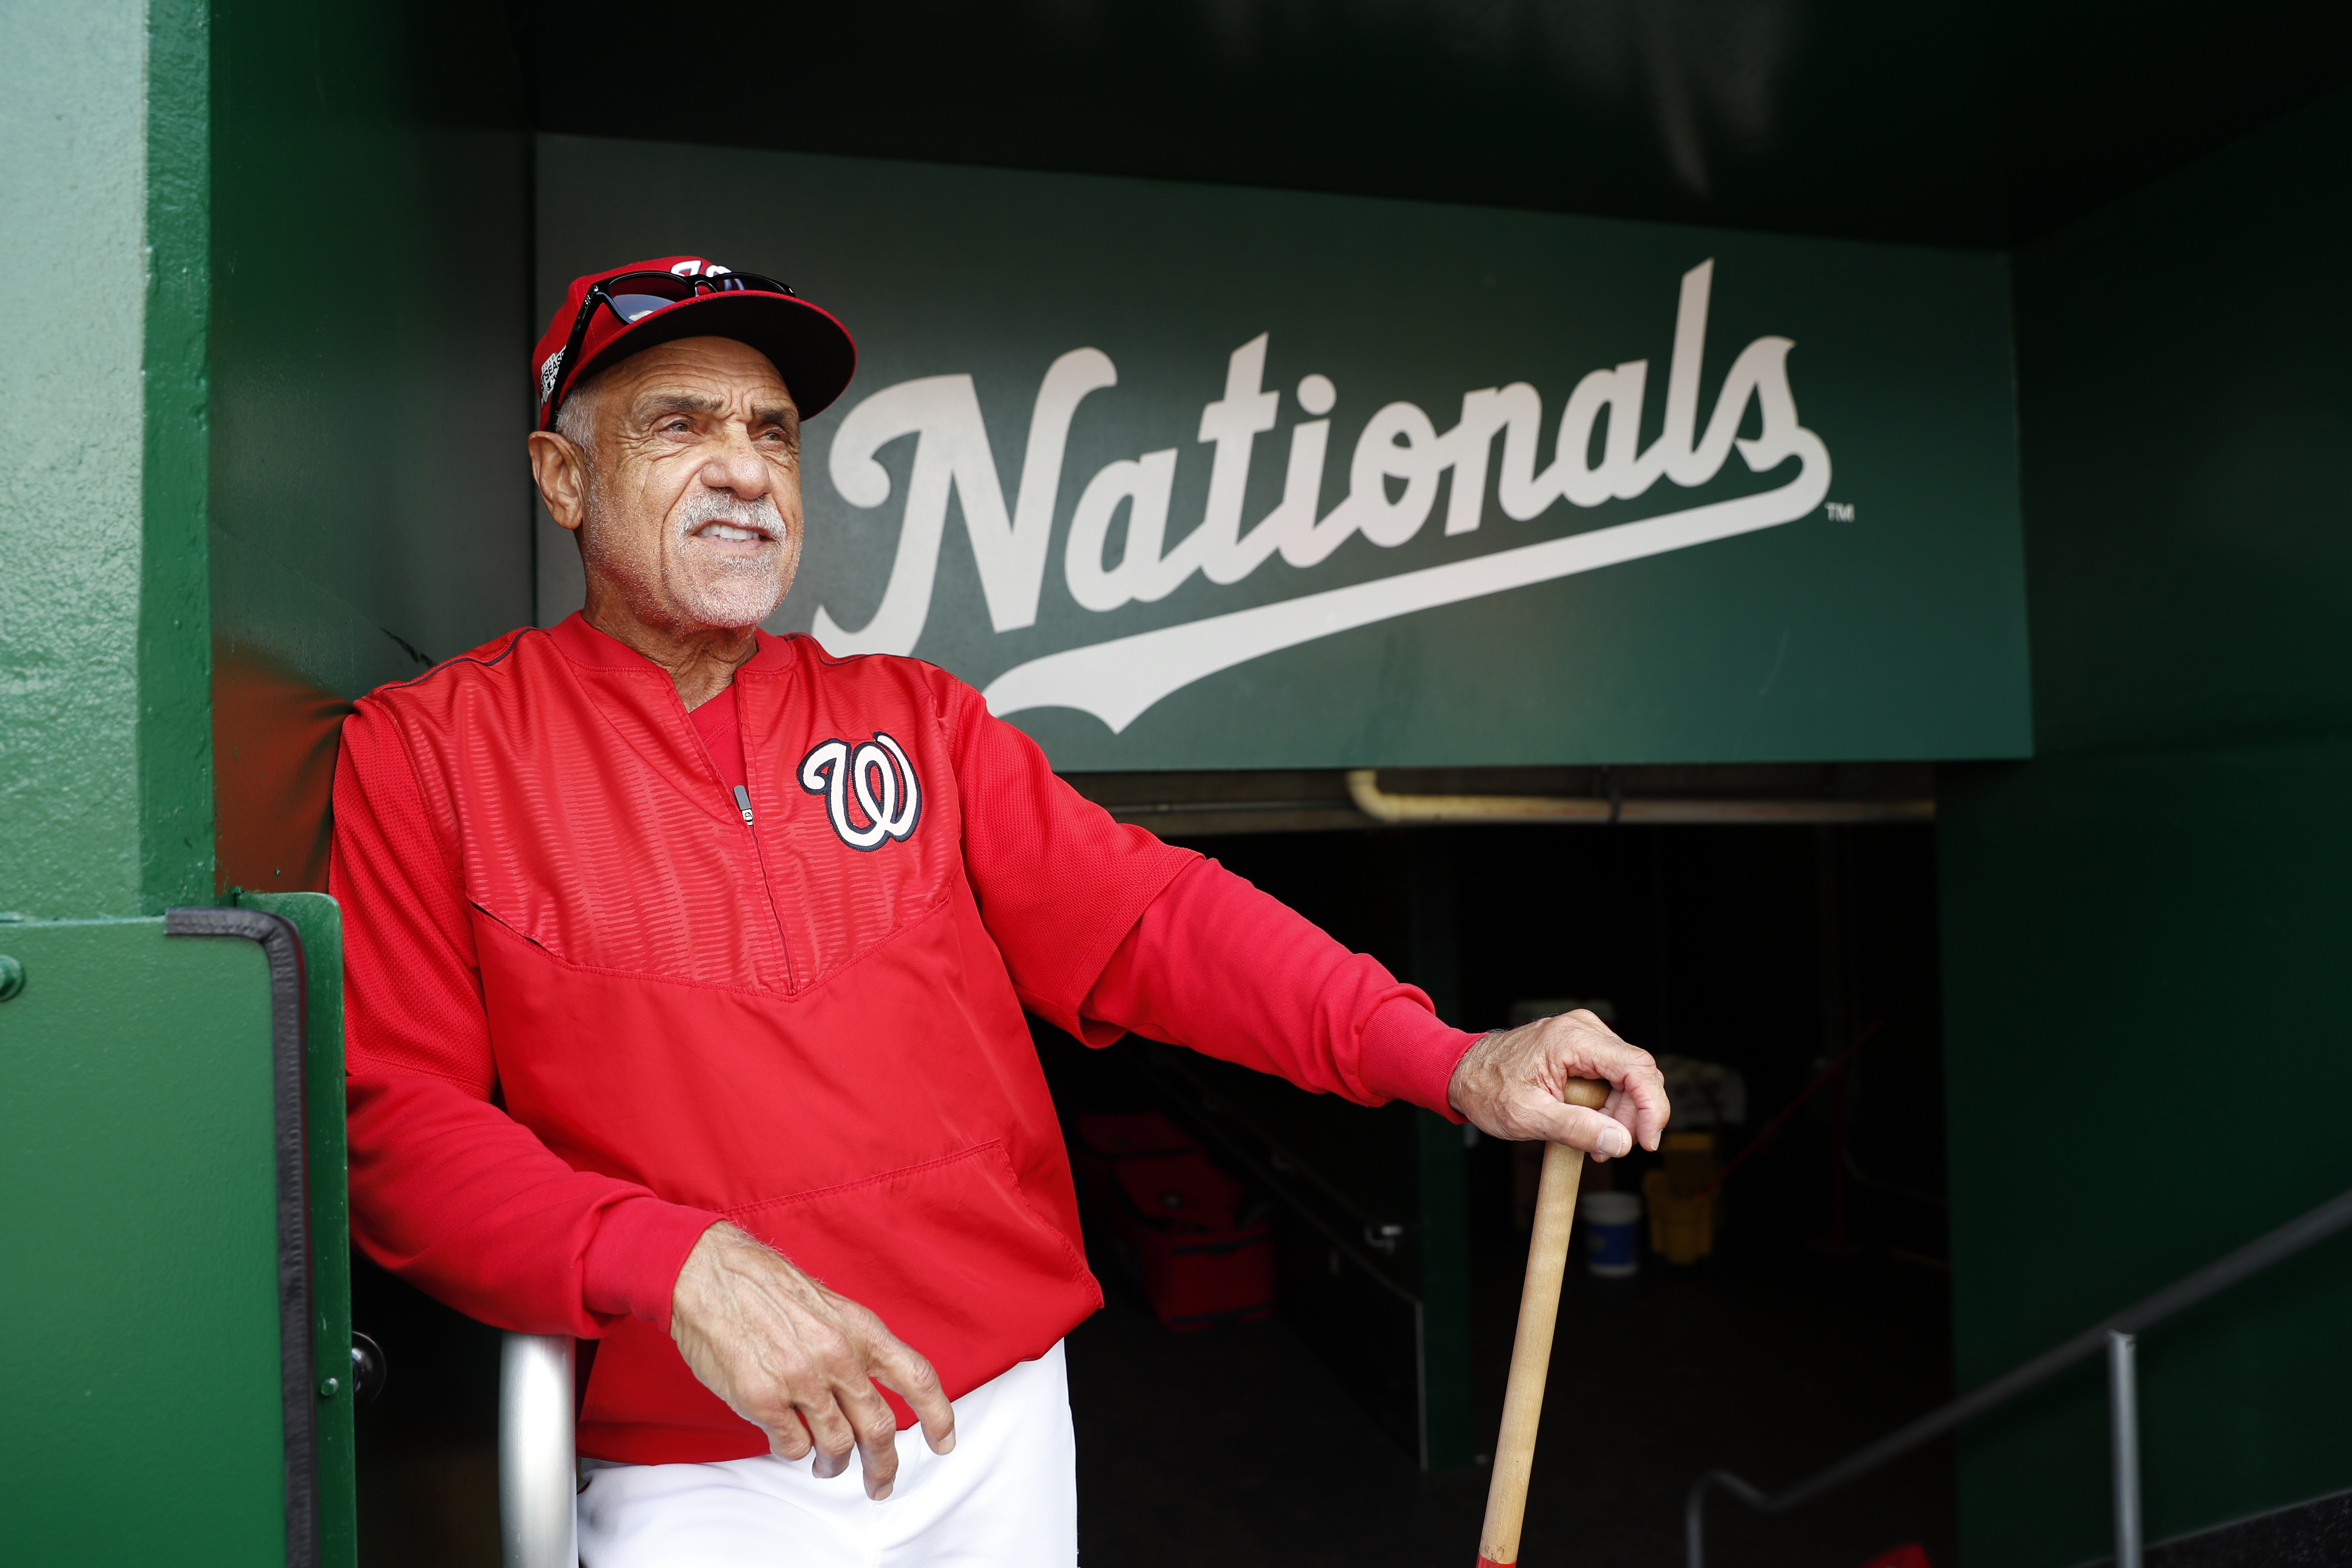 Washington Nationals first base coach Davey Lopes pauses during baseball batting practice at Nationals Park, Tuesday, Oct. 4, 2016, in Washington. The Nationals host the Los Angeles Dodgers in Game 1 of the National League Division Series on Friday. AP Ph